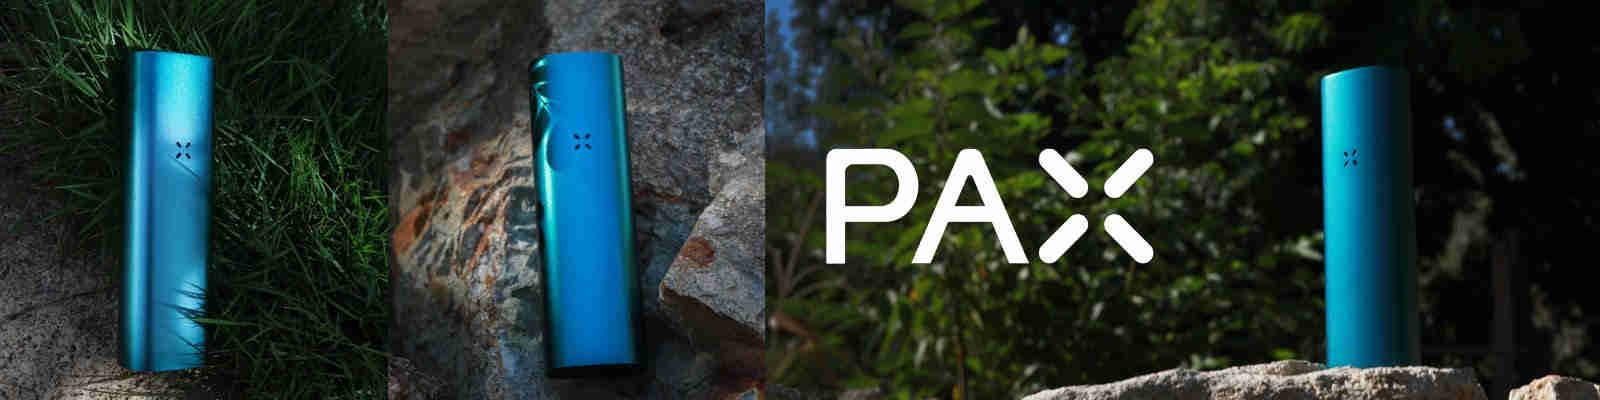 Pax Vaporizers USA Authorized Seller  Free Shipping